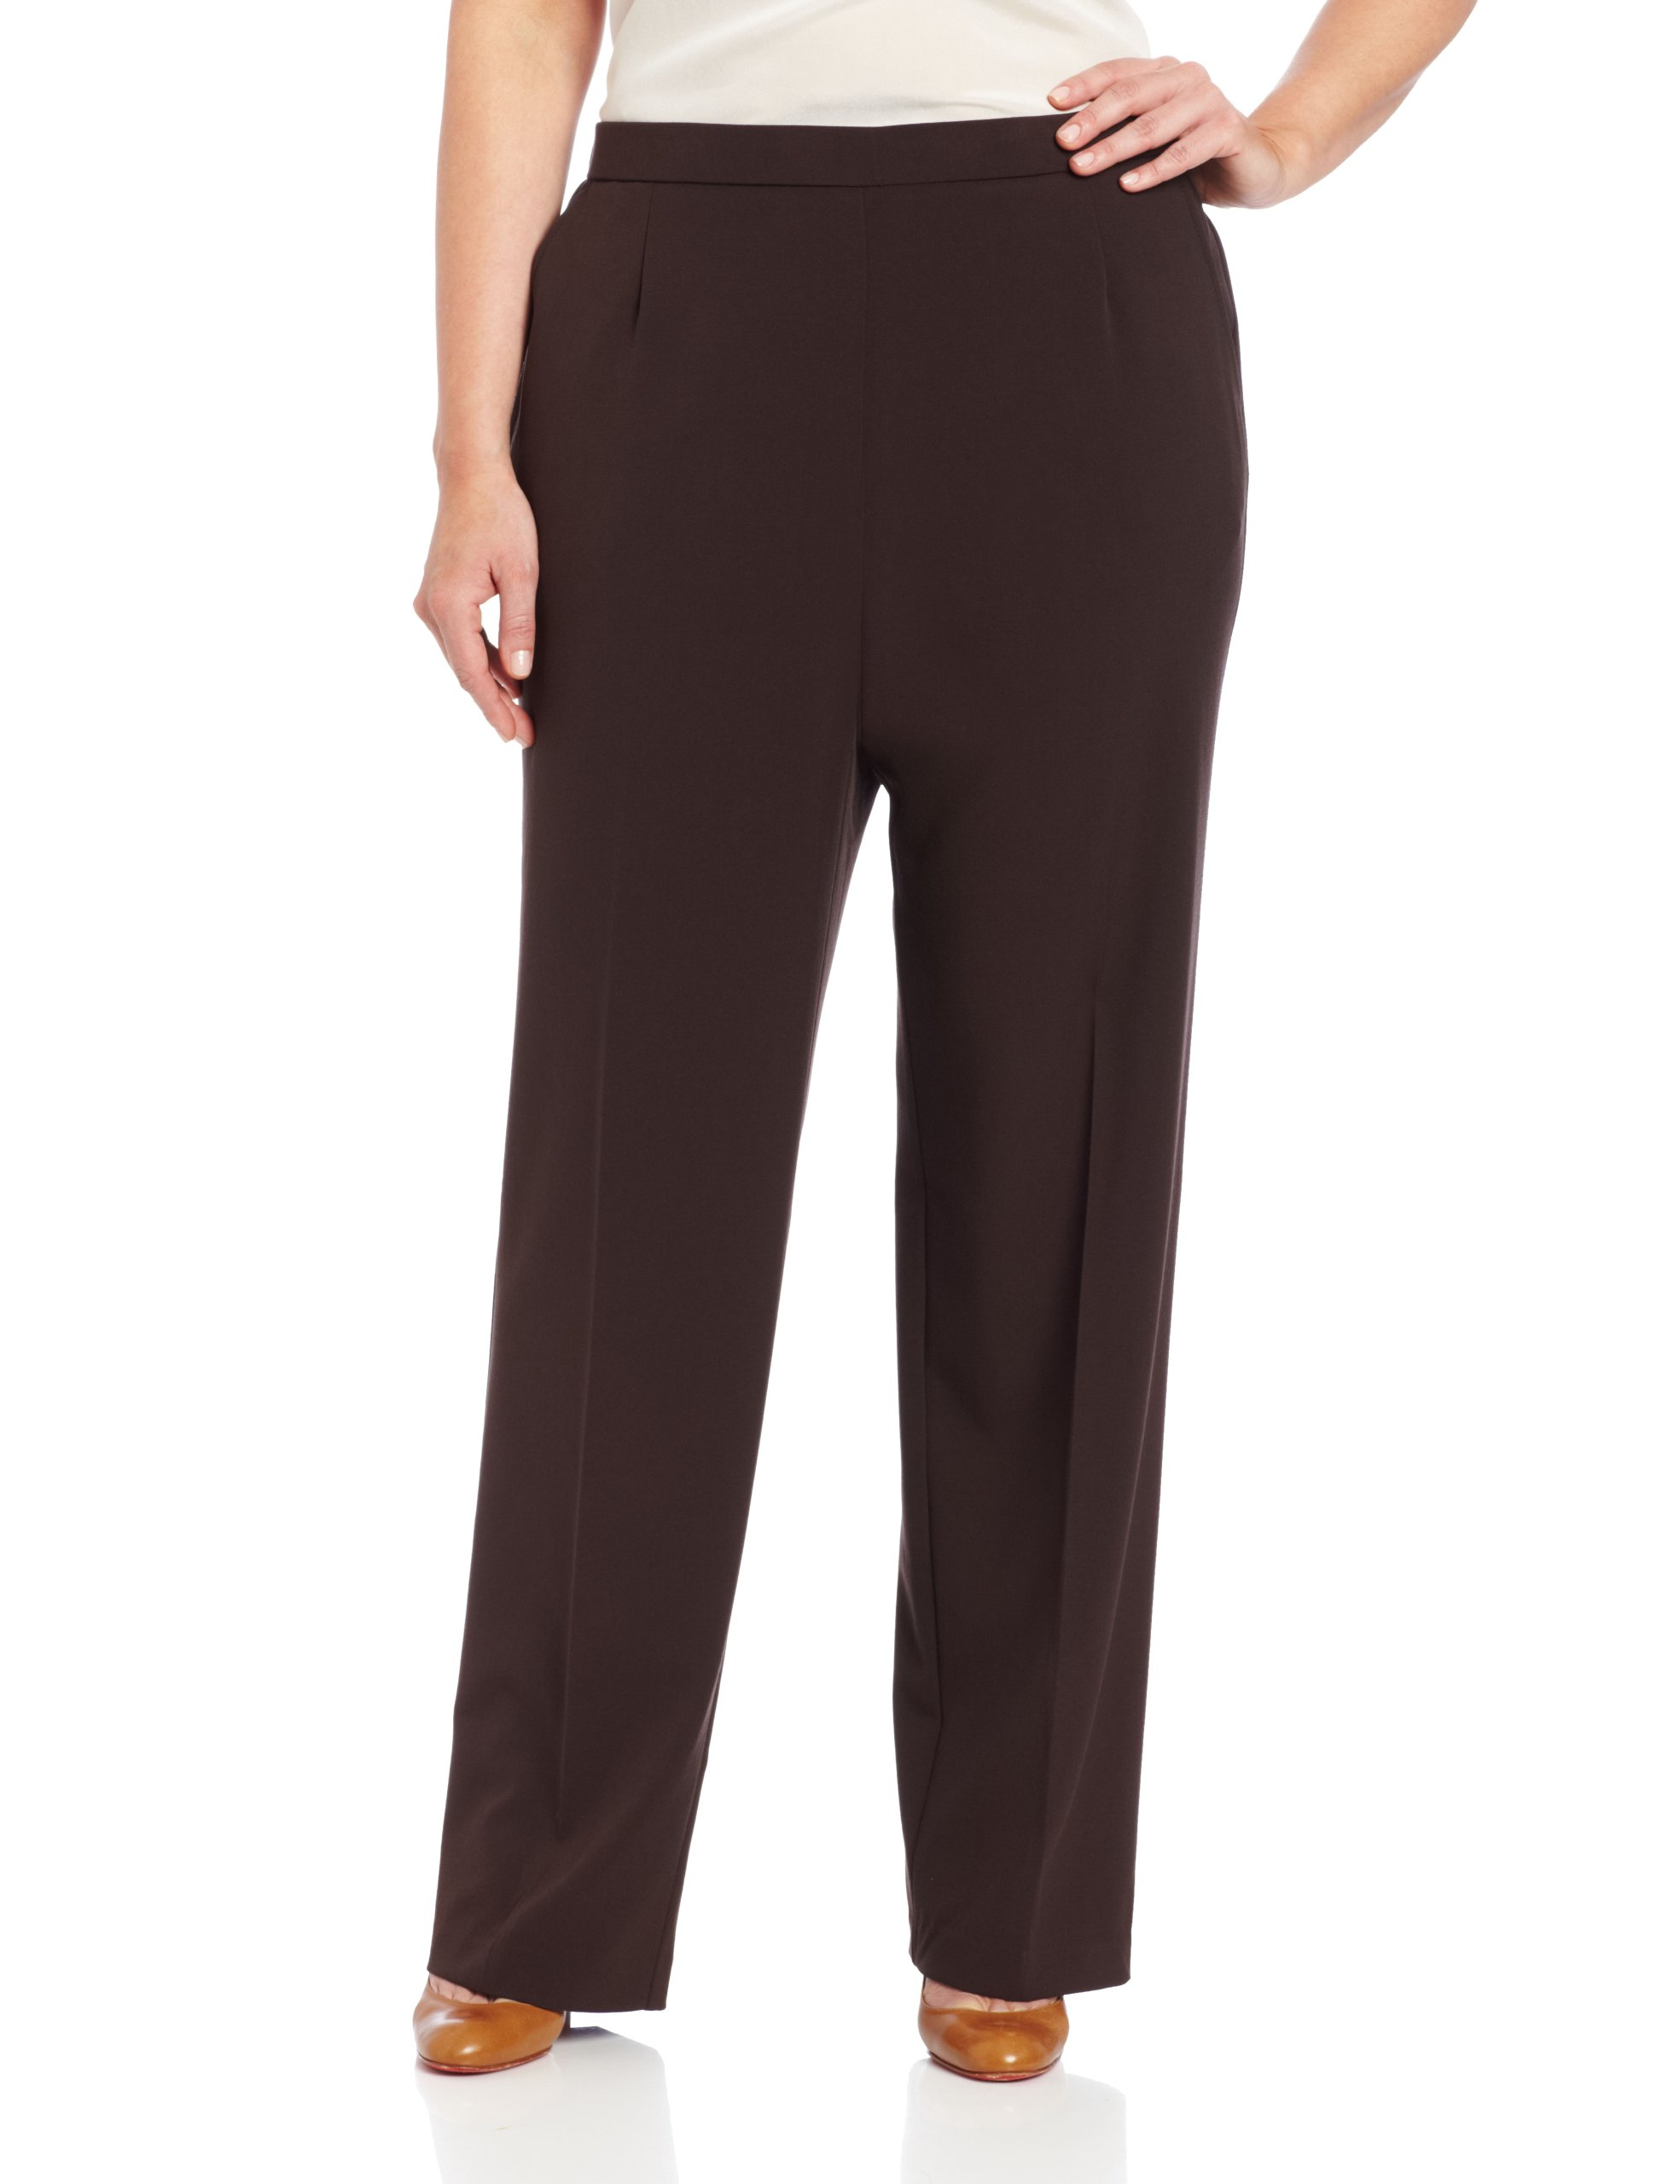 Briggs New York Women's All Around Comfort Pant,Brown,22W